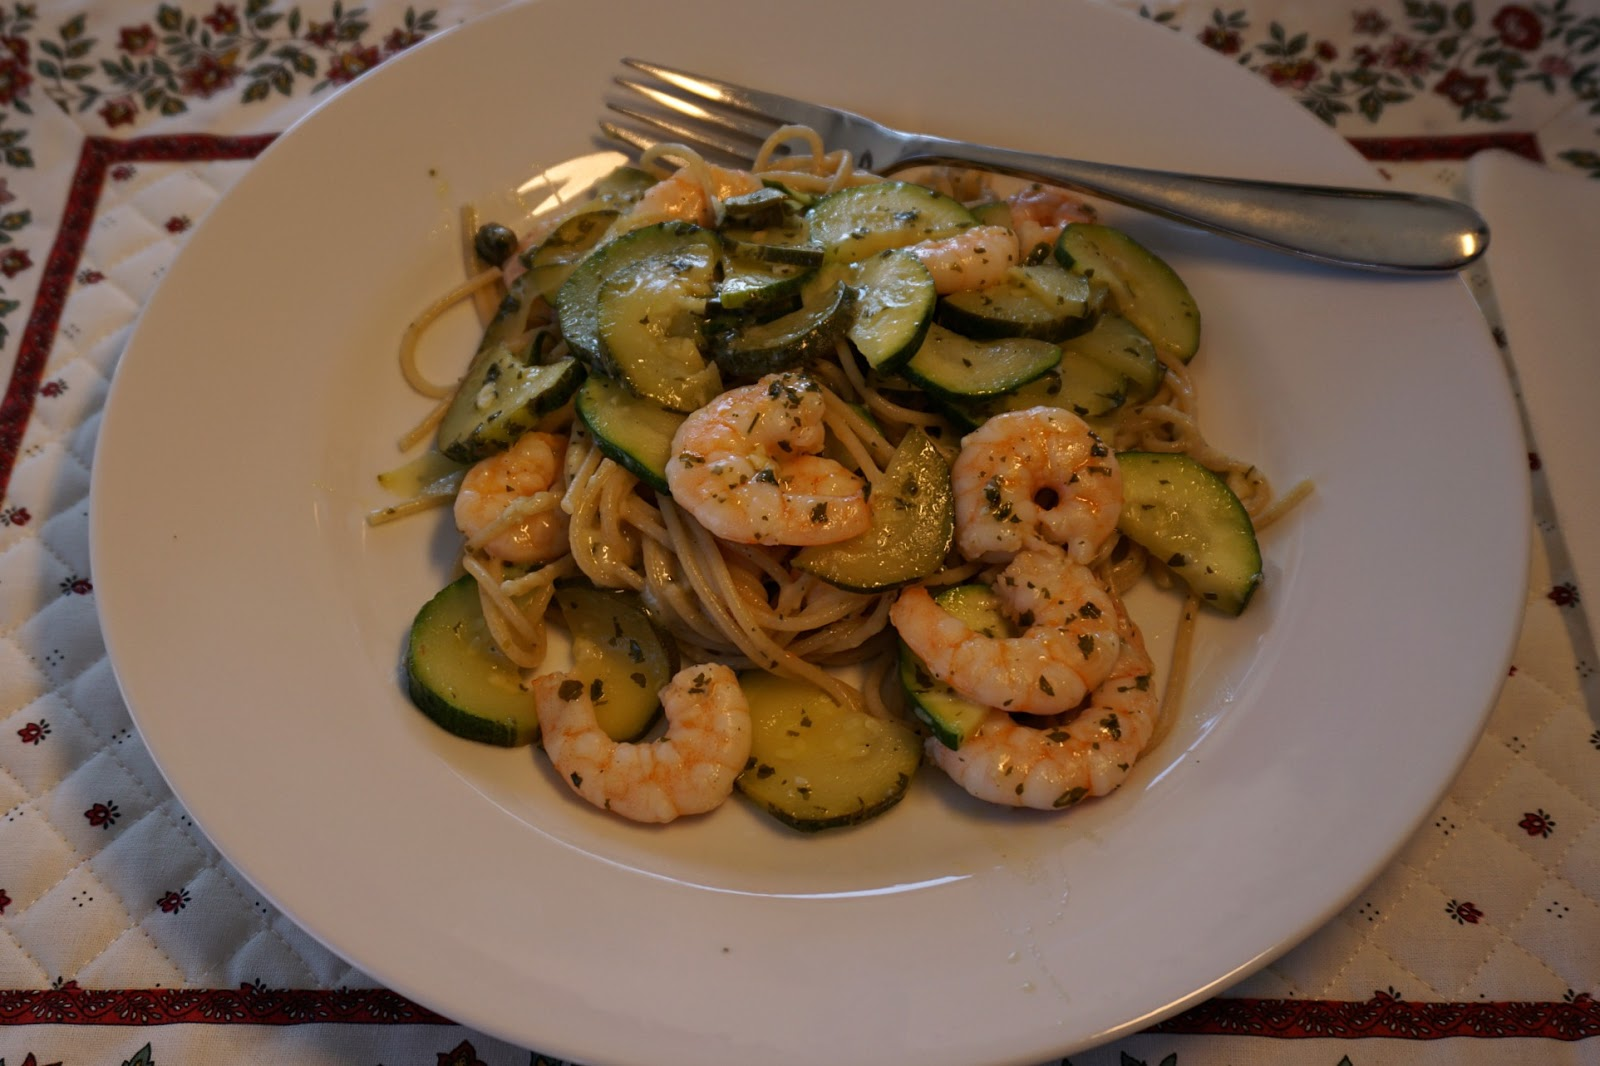 Spaghetti with zucchini, shrimps and capers